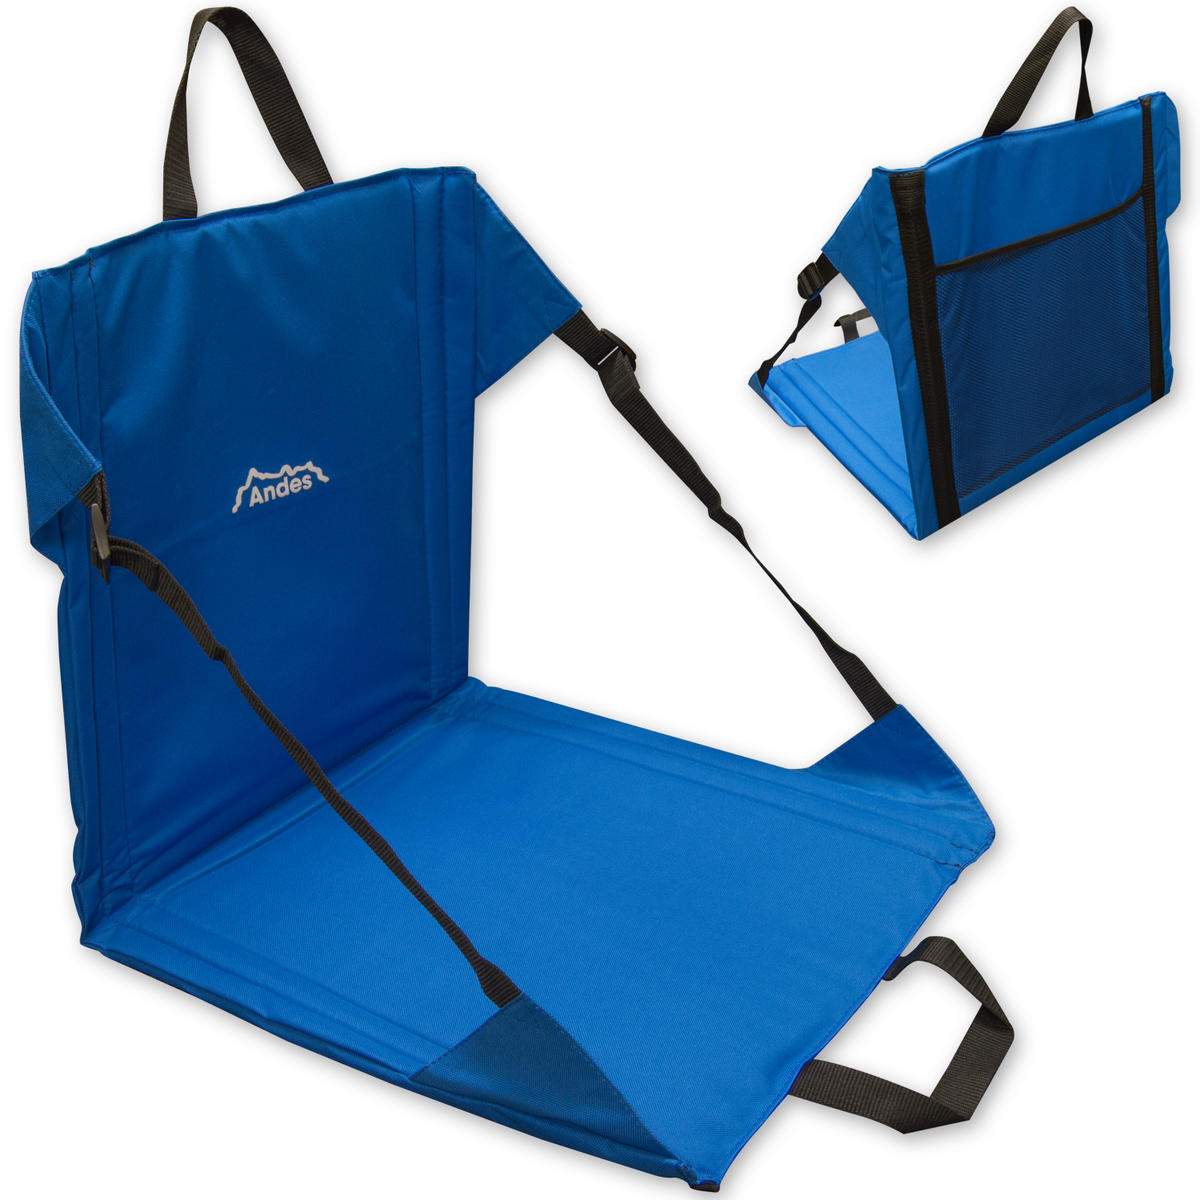 Andes Folding Beach Chair Andes